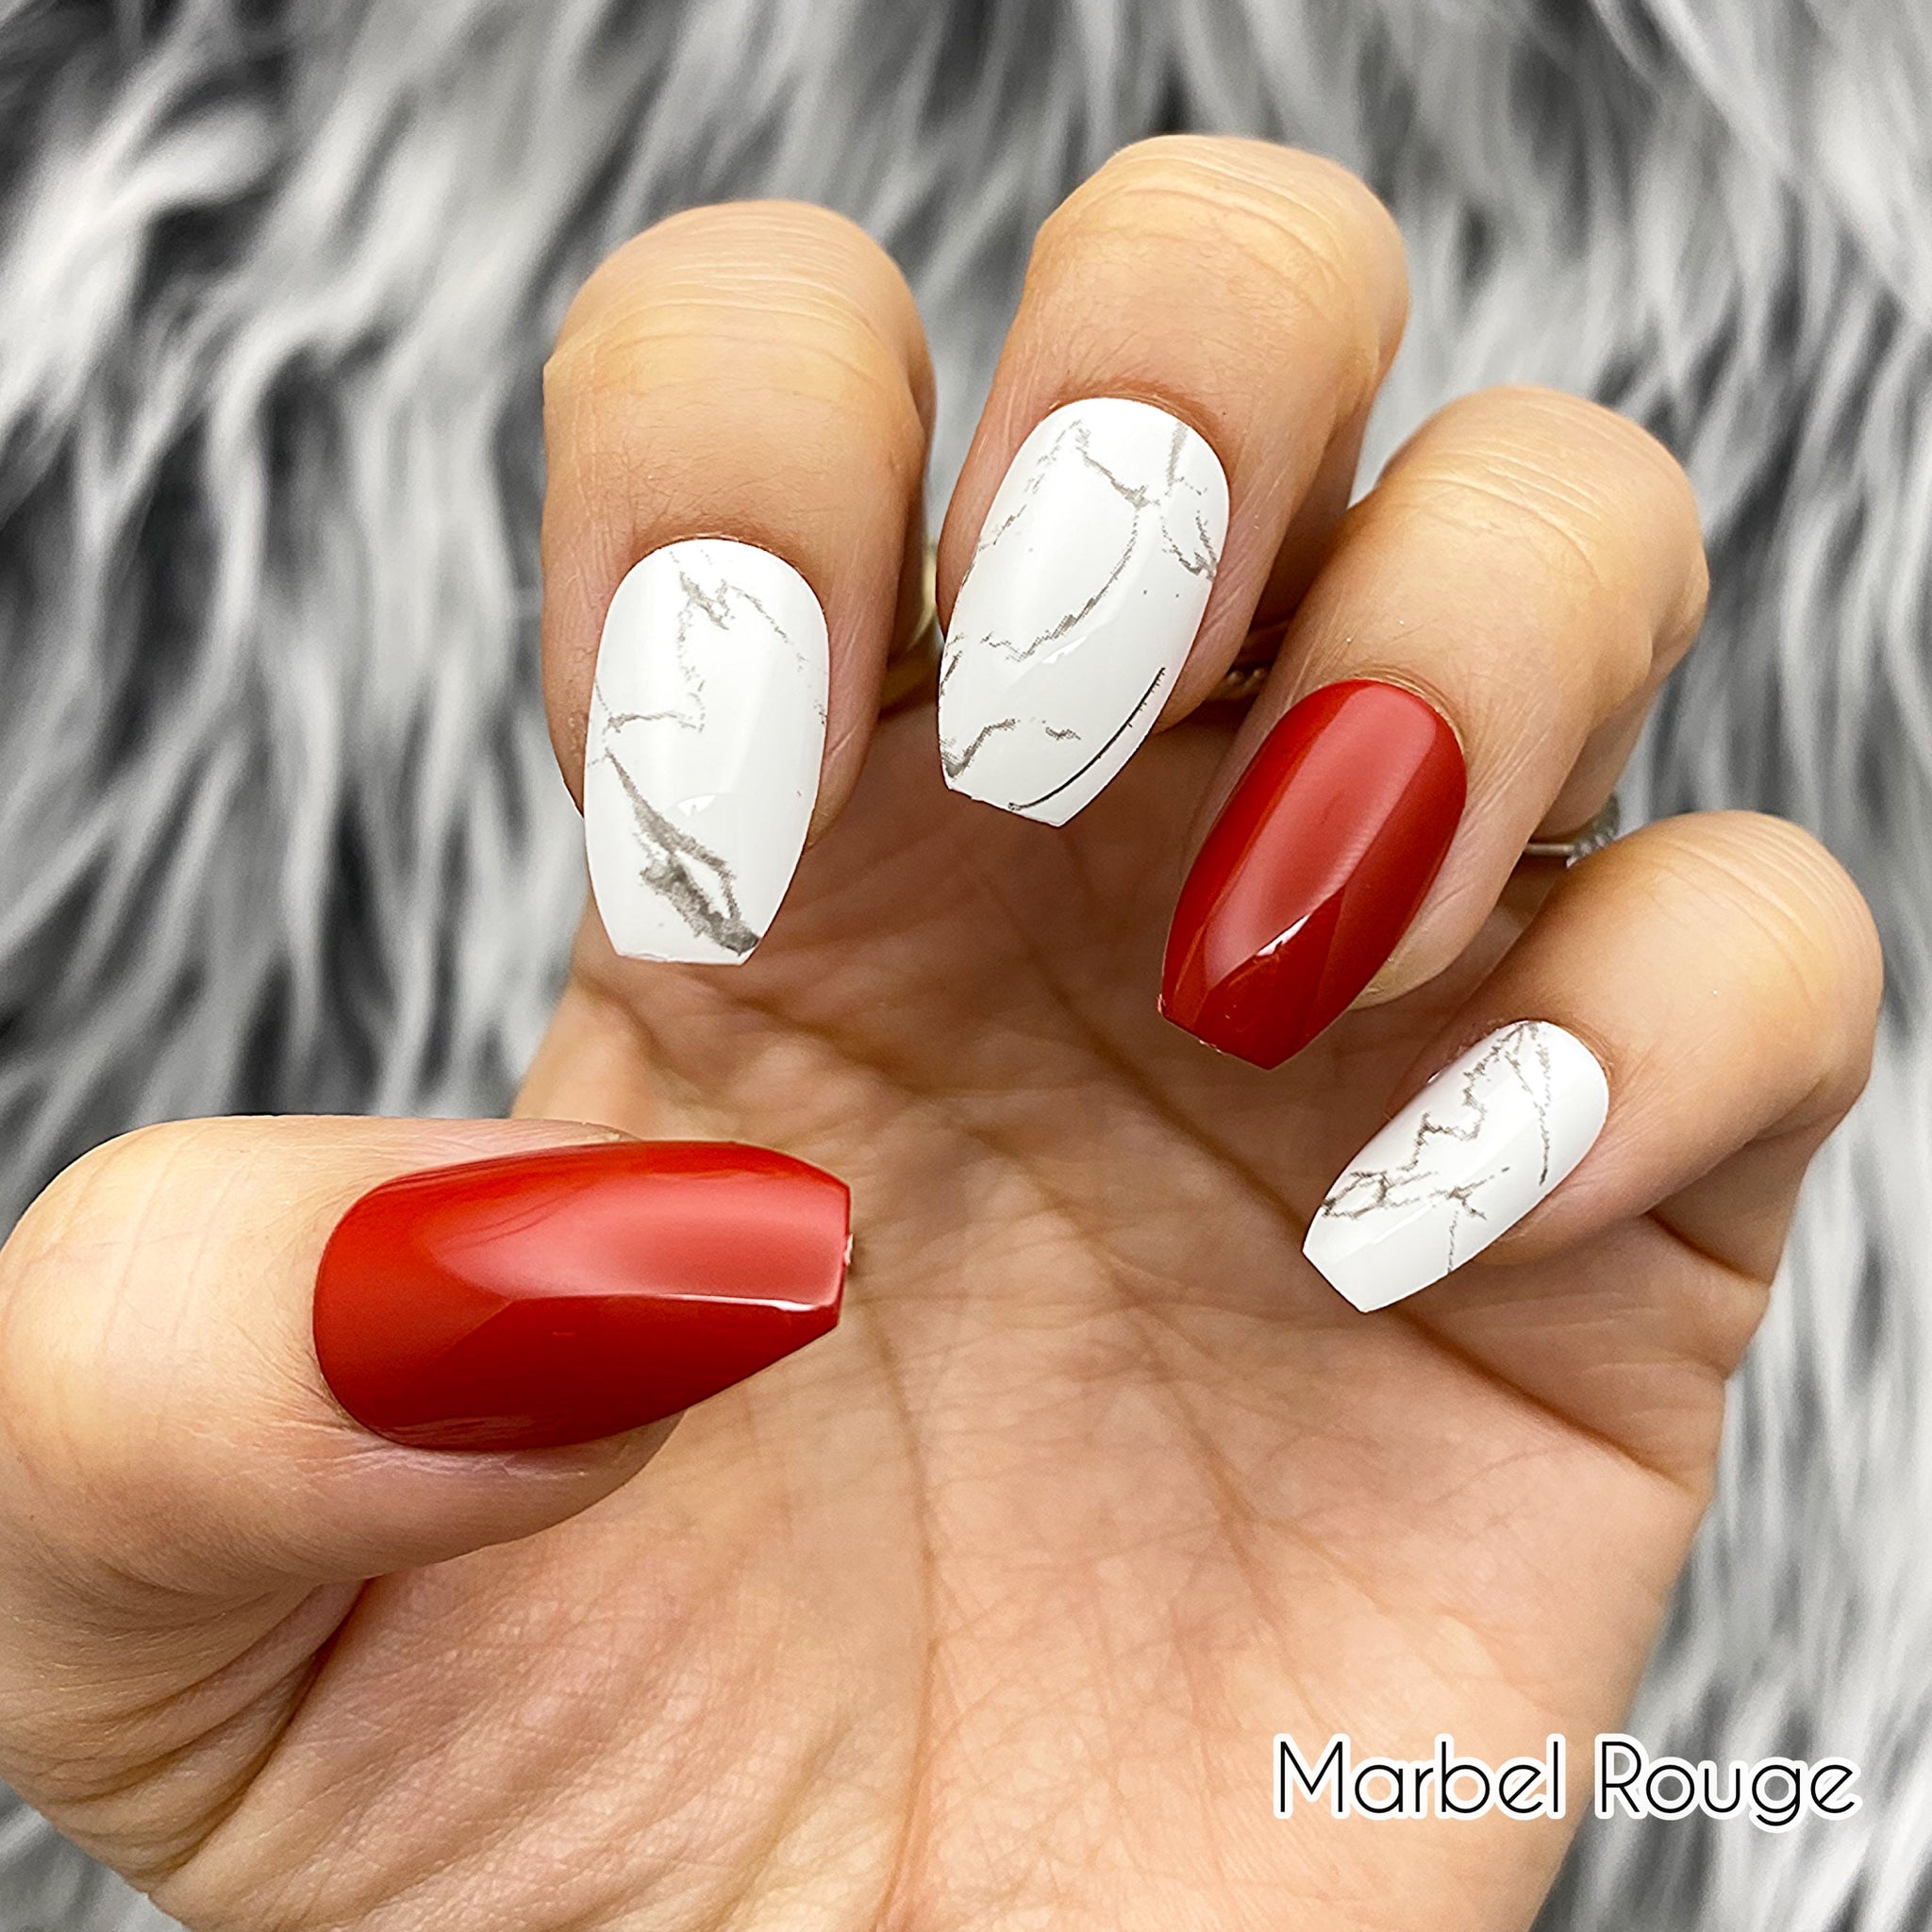 INSTANT GLAM- MARBLE ROUGE - WHITE MARBLE W RED PRESS ON SET